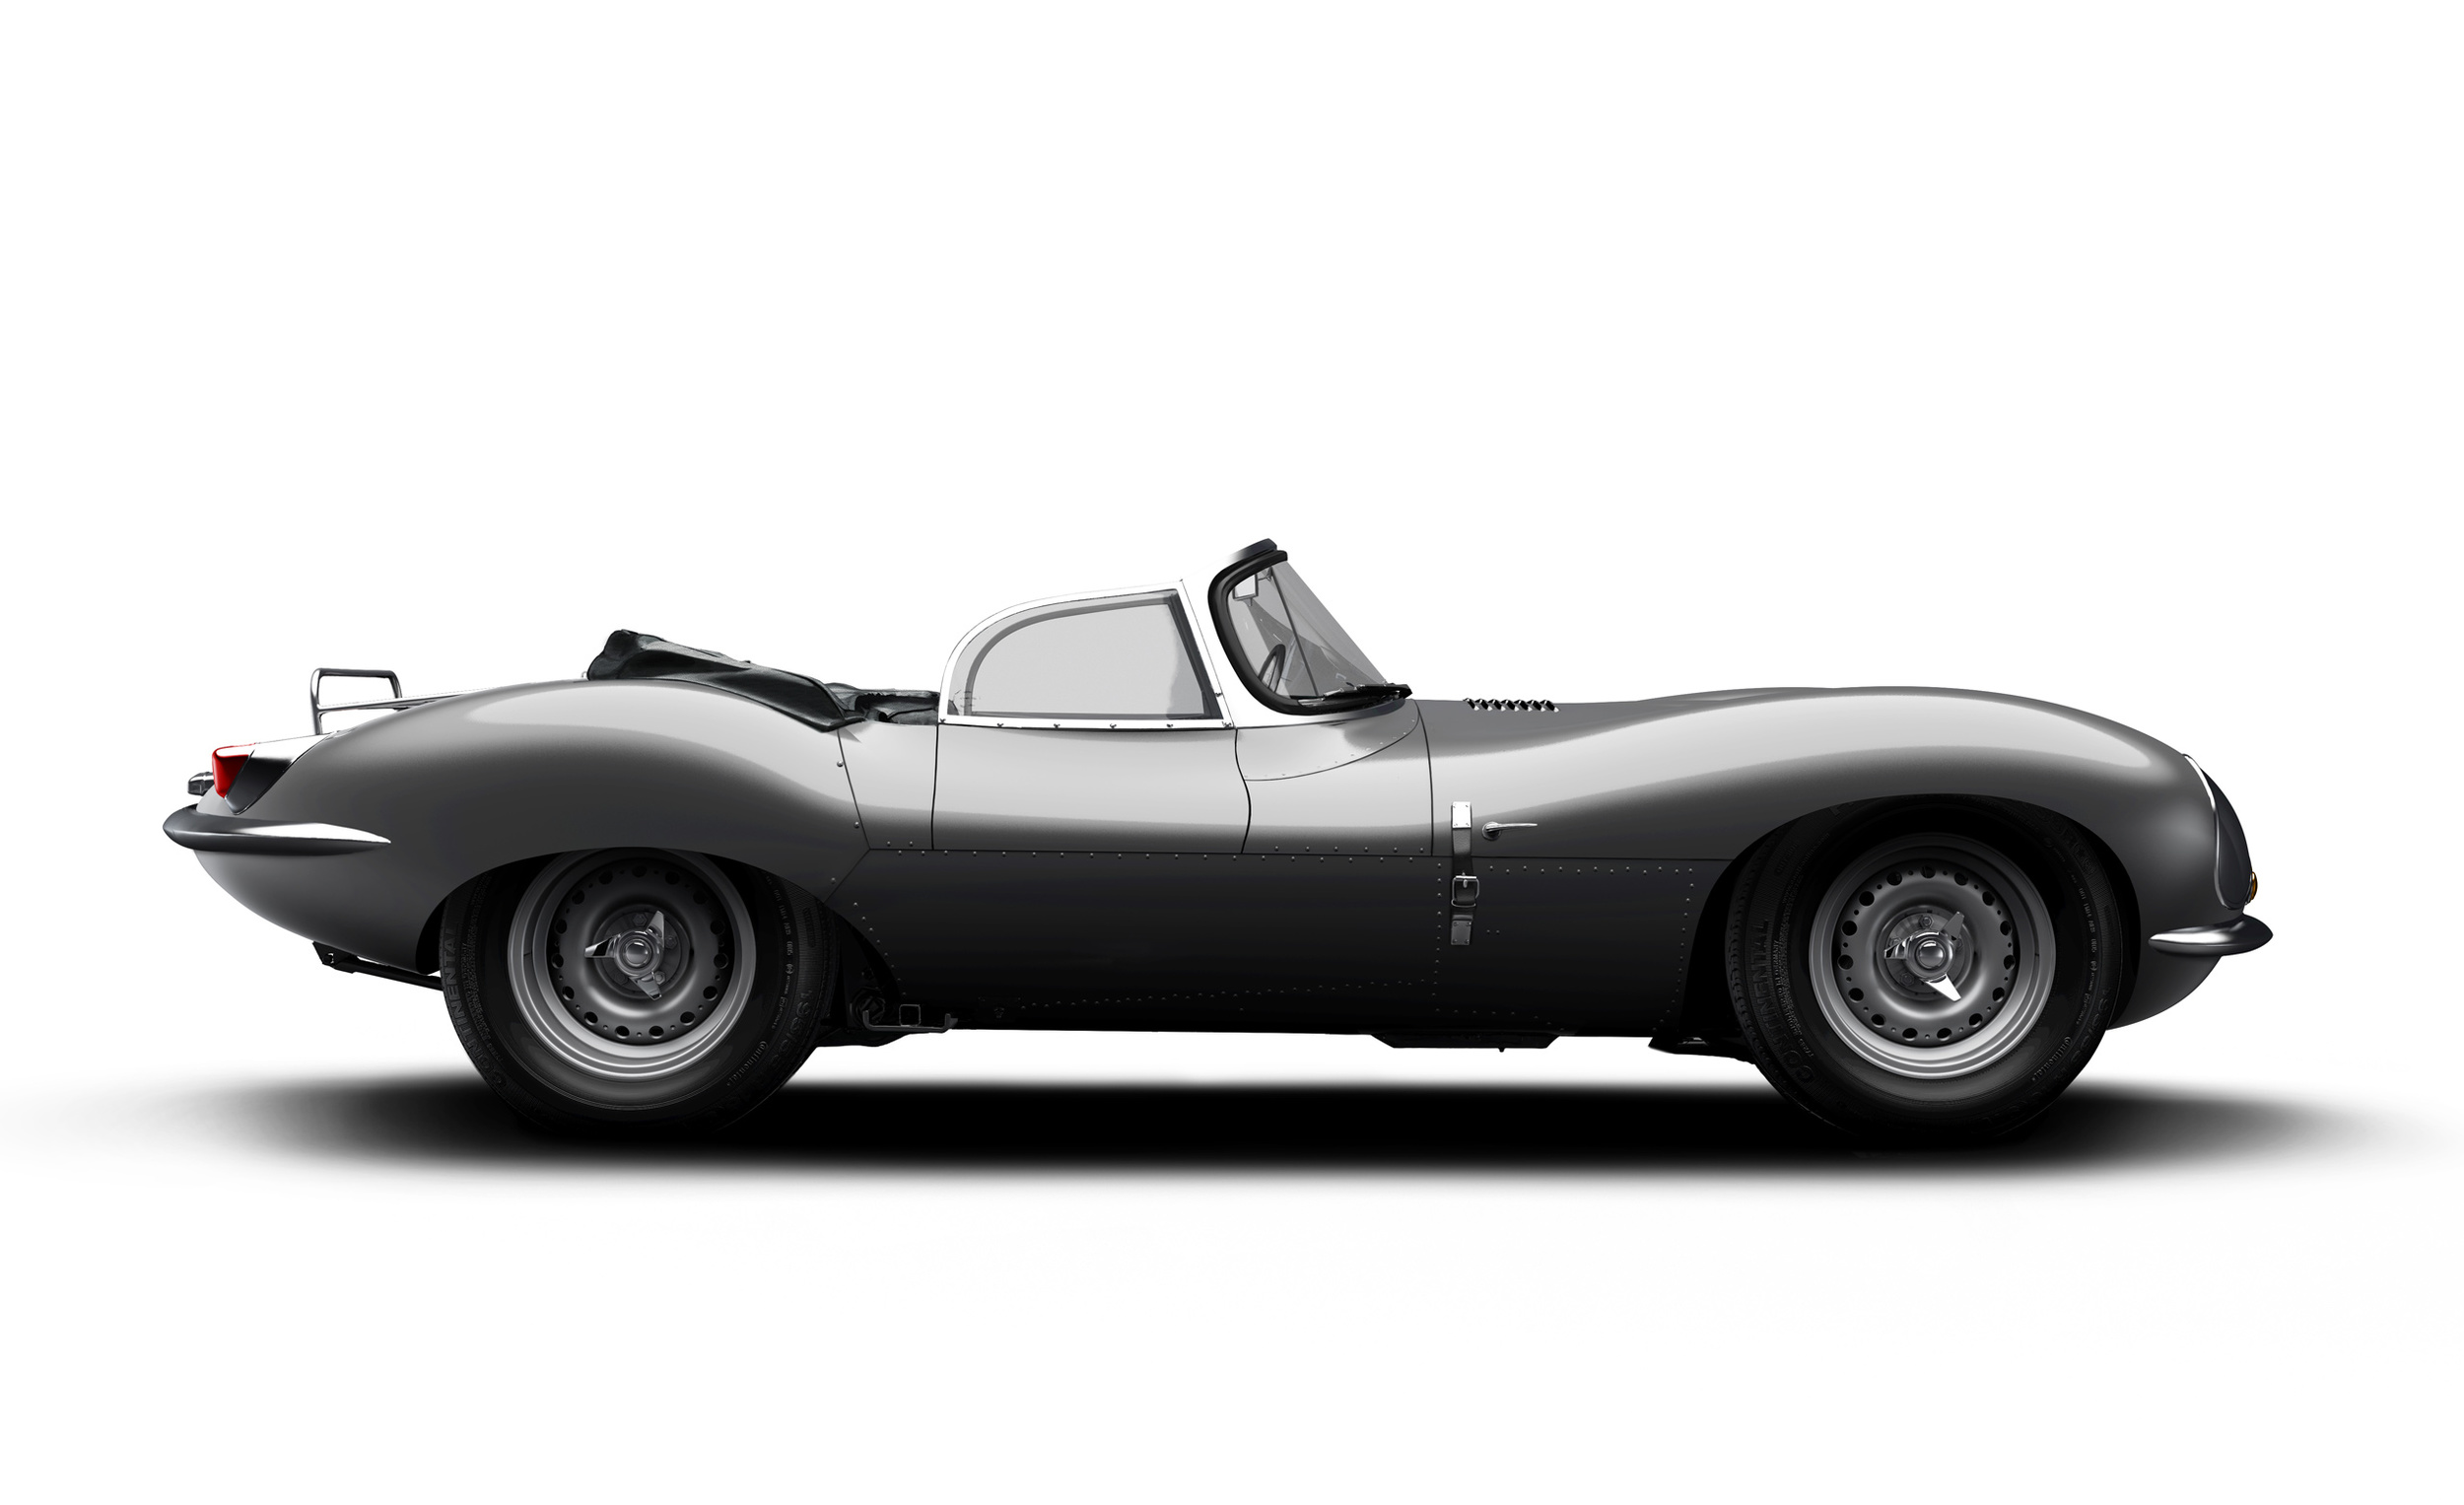 XKSS-Side-Render-Preview-(1).jpg